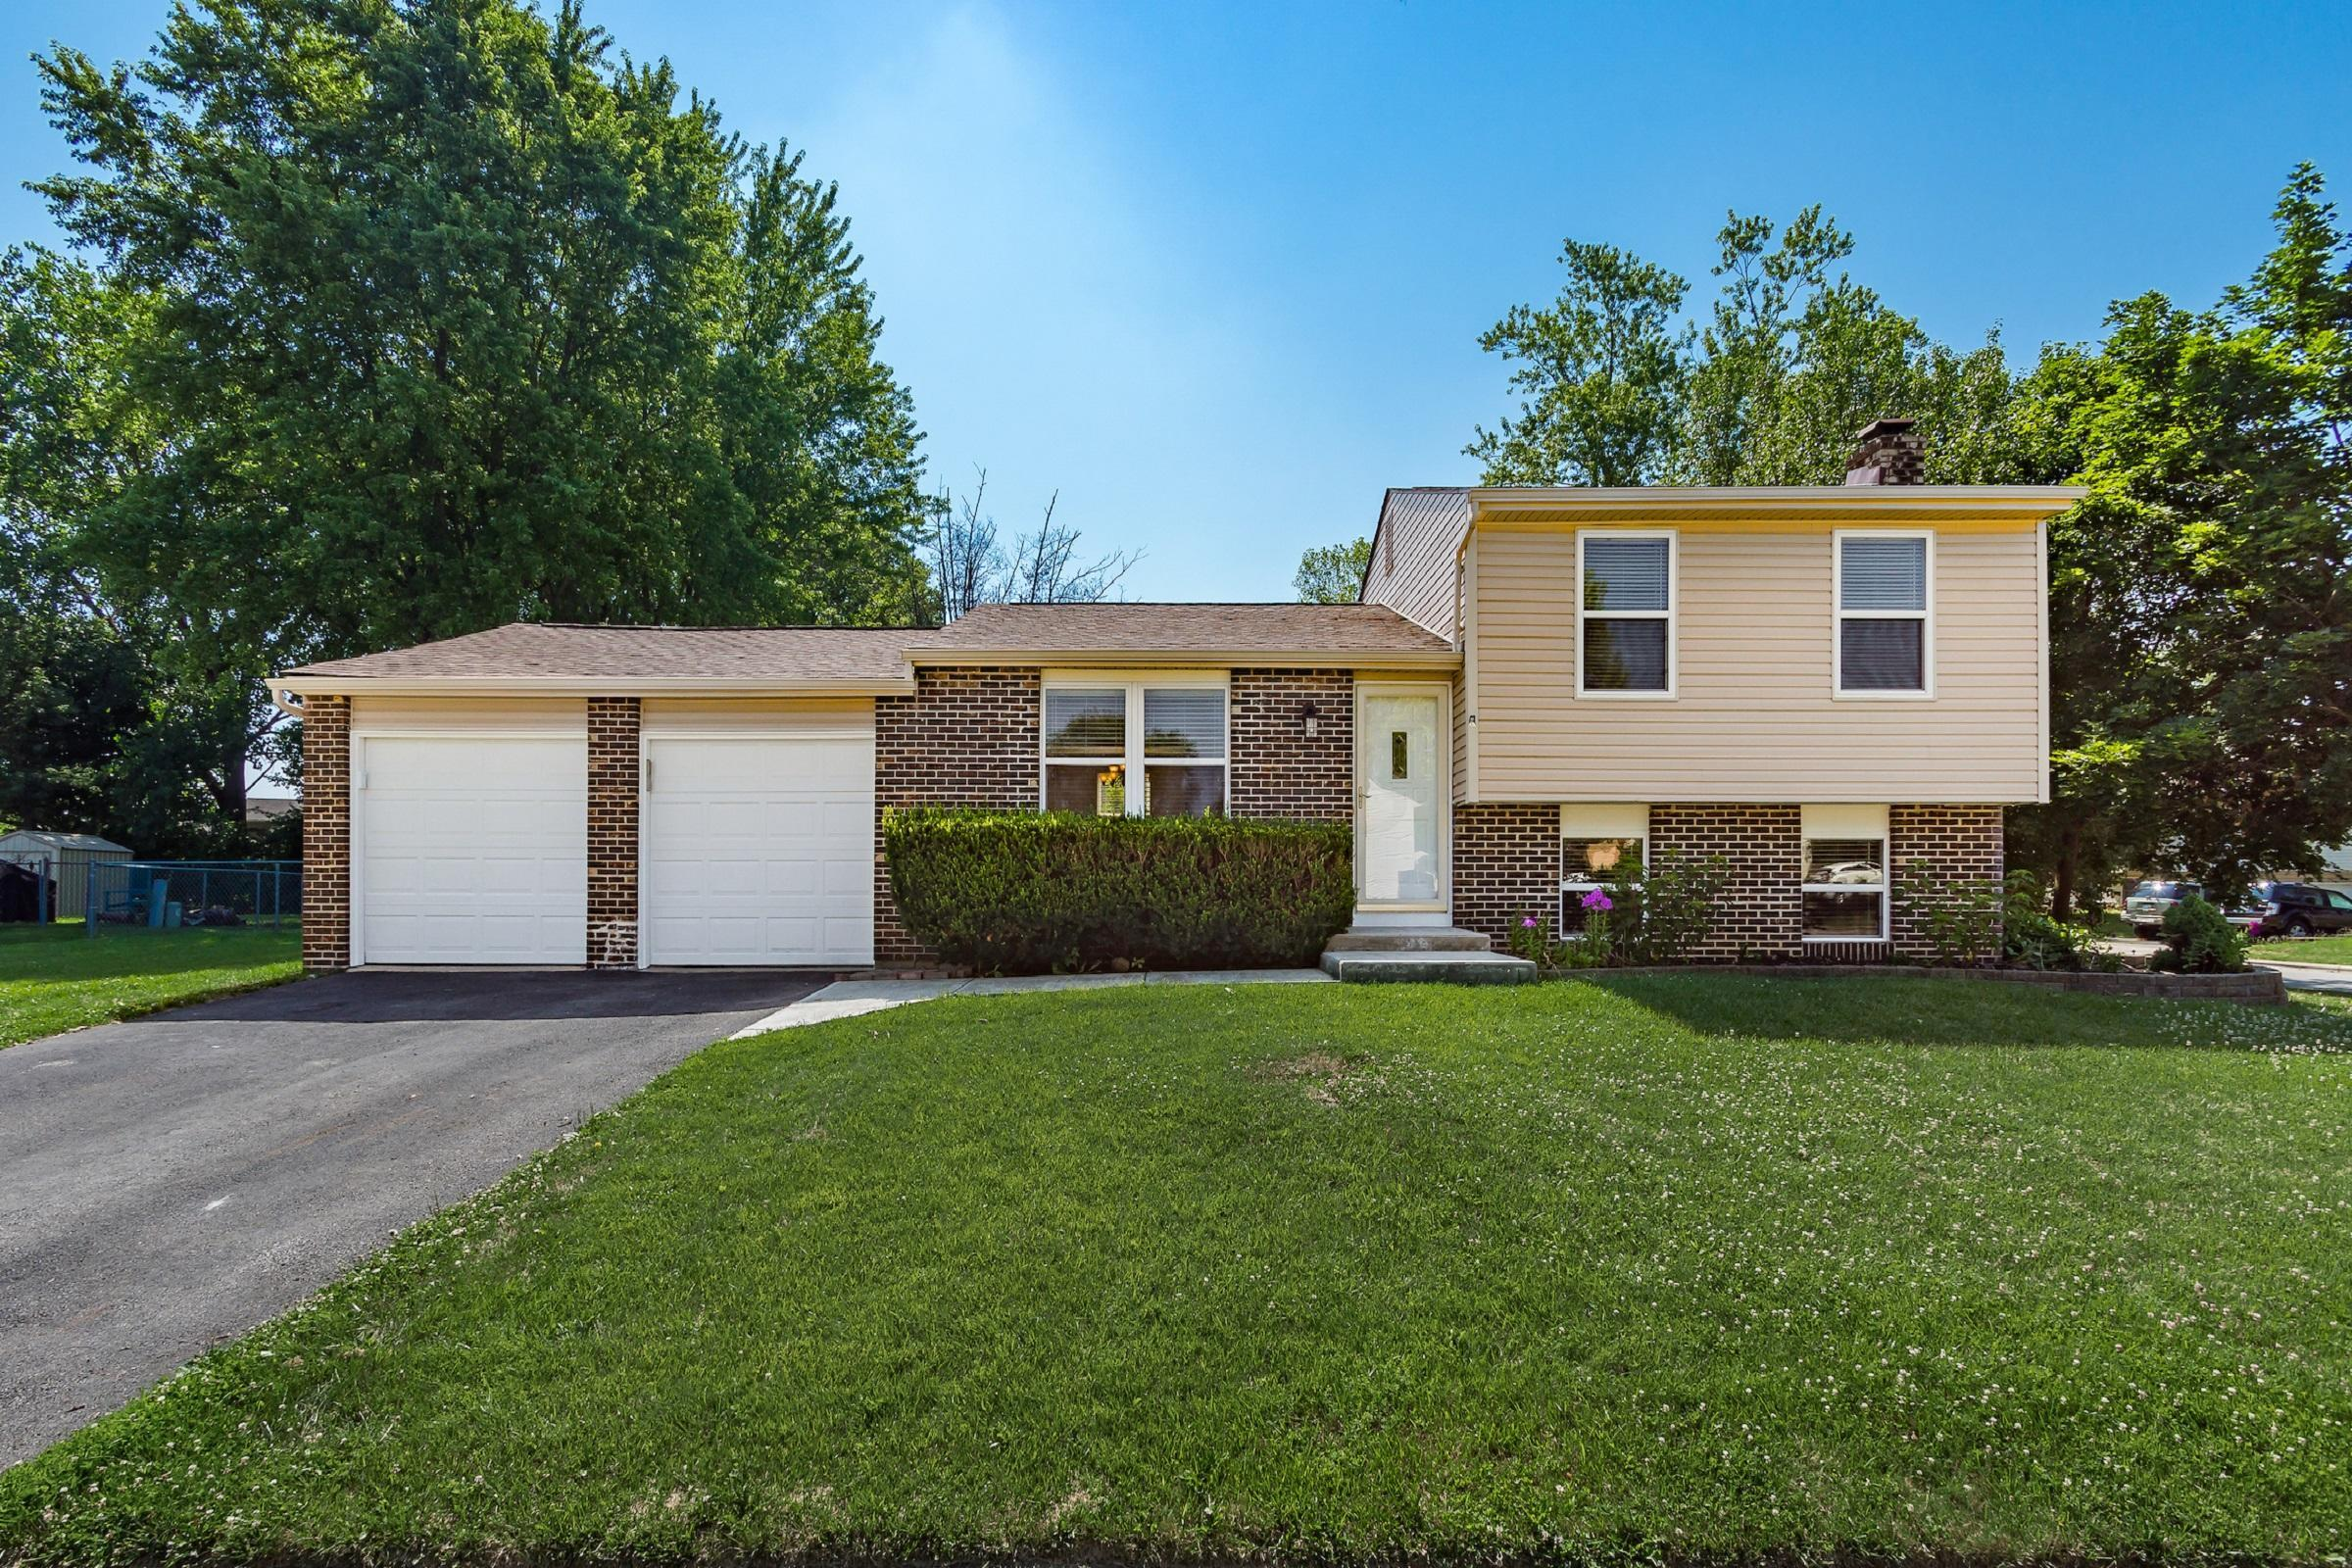 634 Dukewell Place, Galloway, Ohio 43119, 3 Bedrooms Bedrooms, ,2 BathroomsBathrooms,Residential,For Sale,Dukewell,220022323